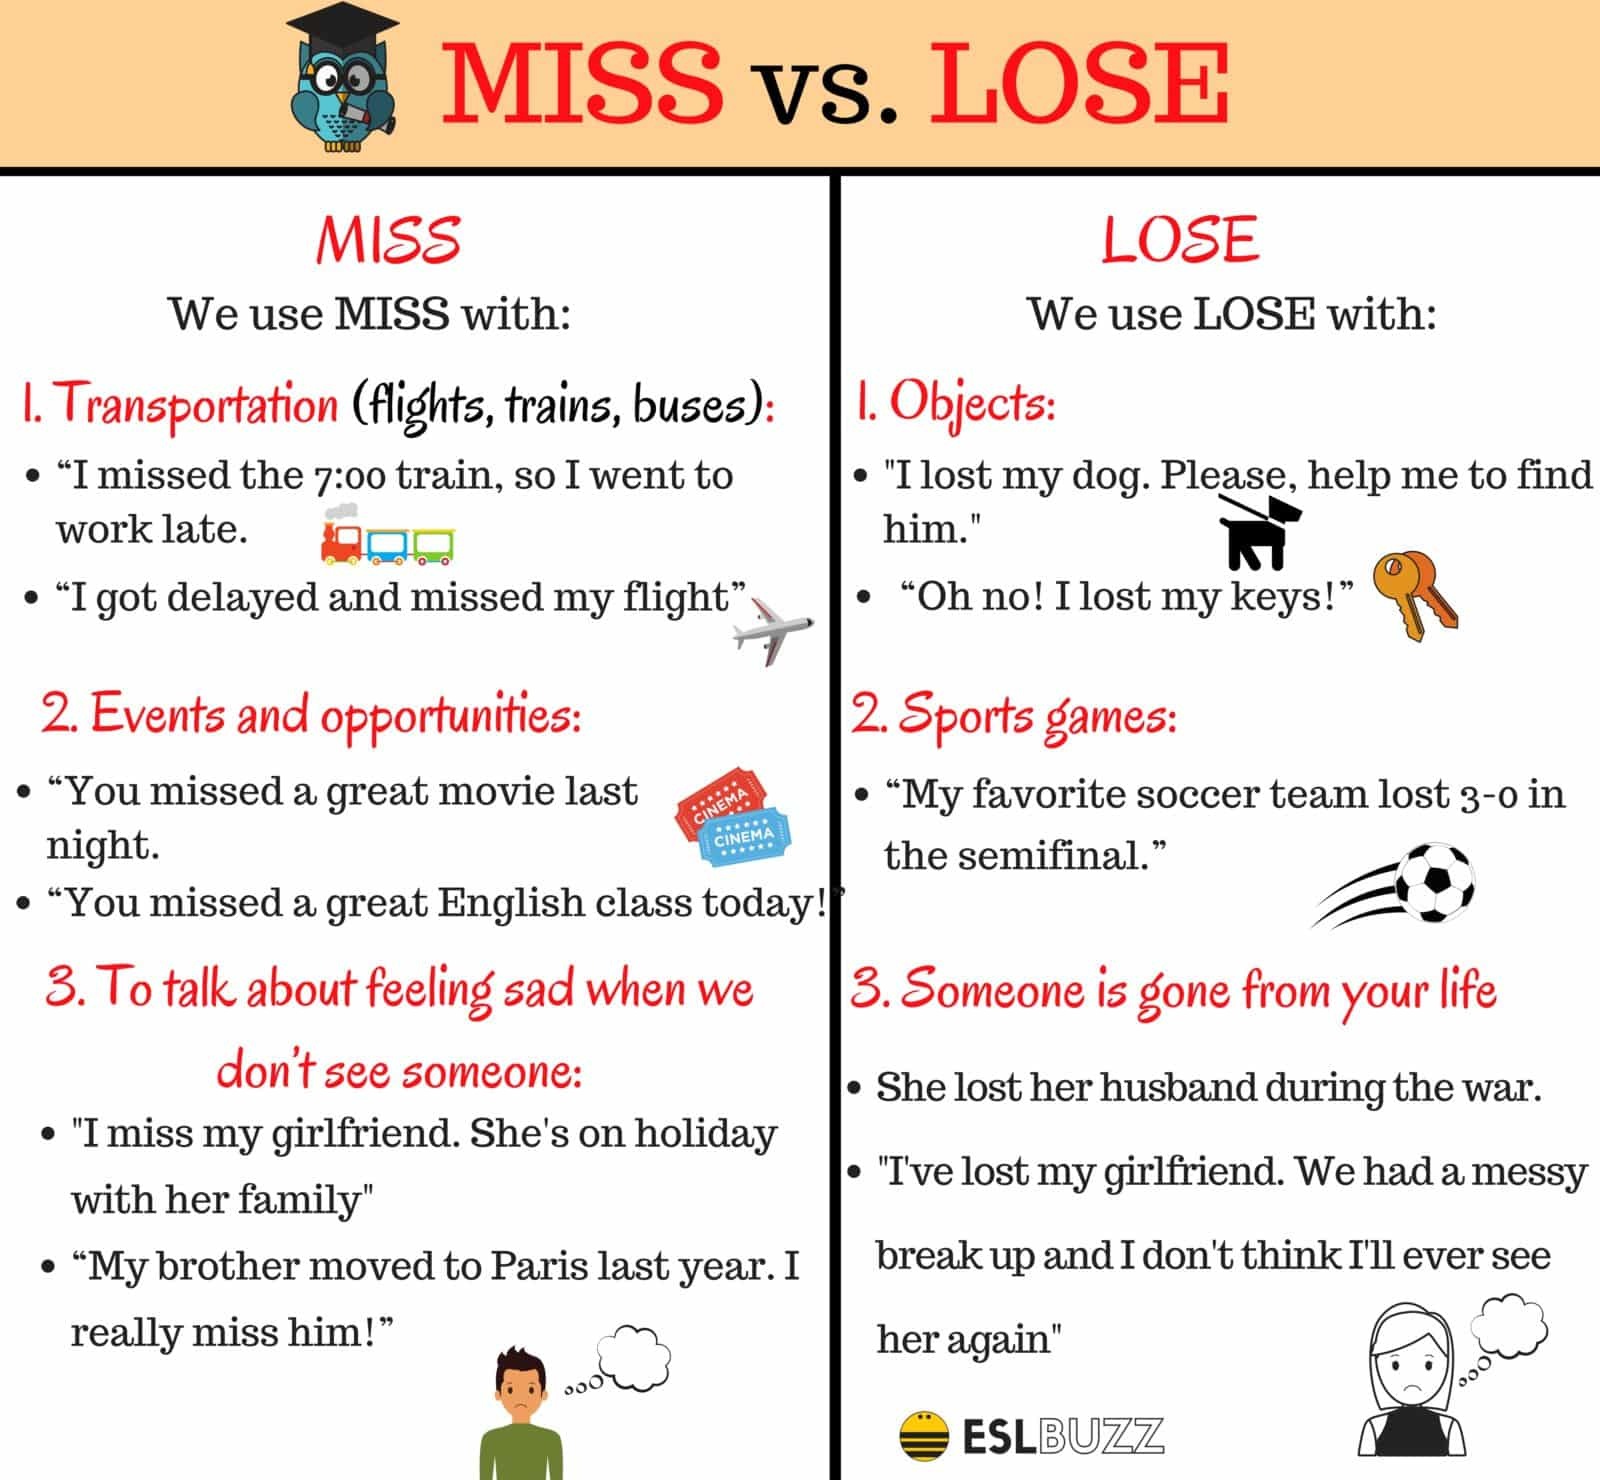 MISS and LOSE